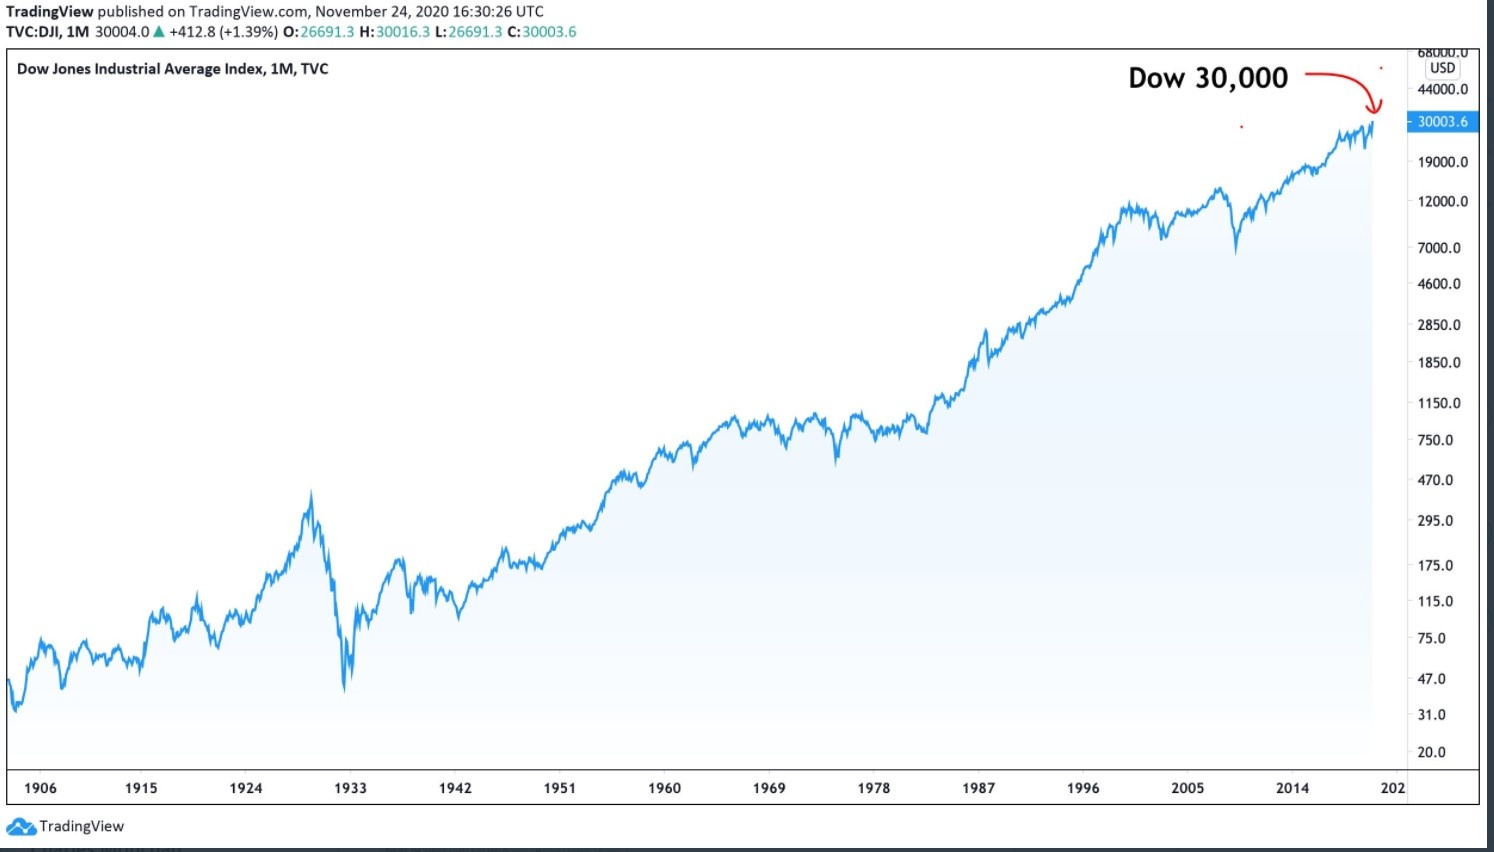 Dow Jones in log scale last 114 years